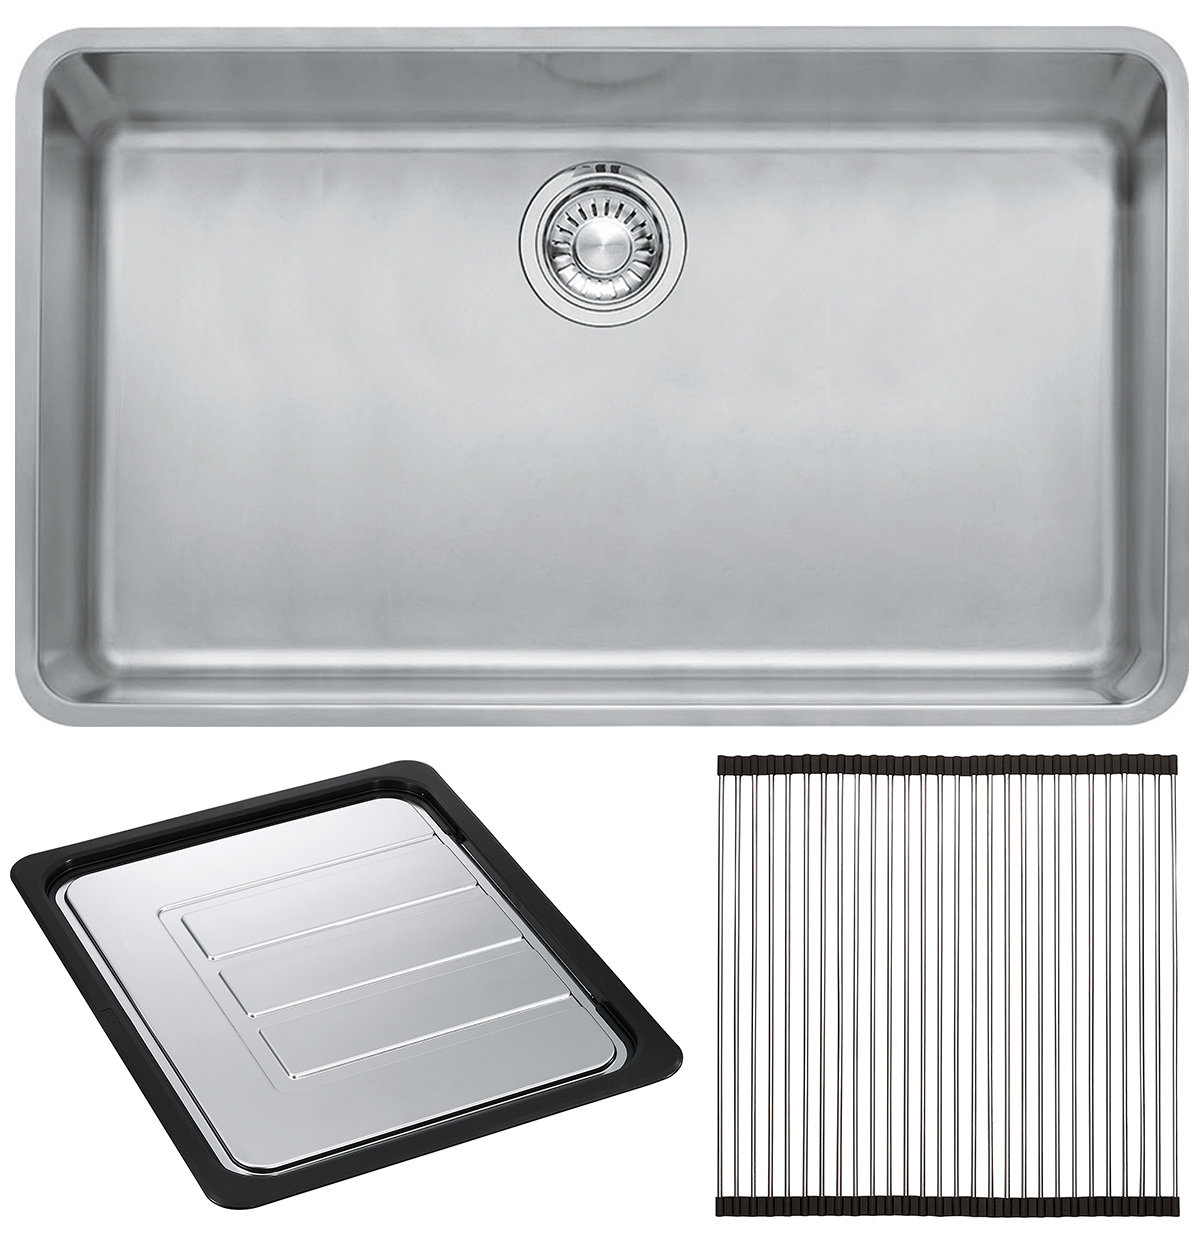 Franke KBX110 70OF Kubus Single Bowl Undermount Sink With Accessories |  Appliances Online